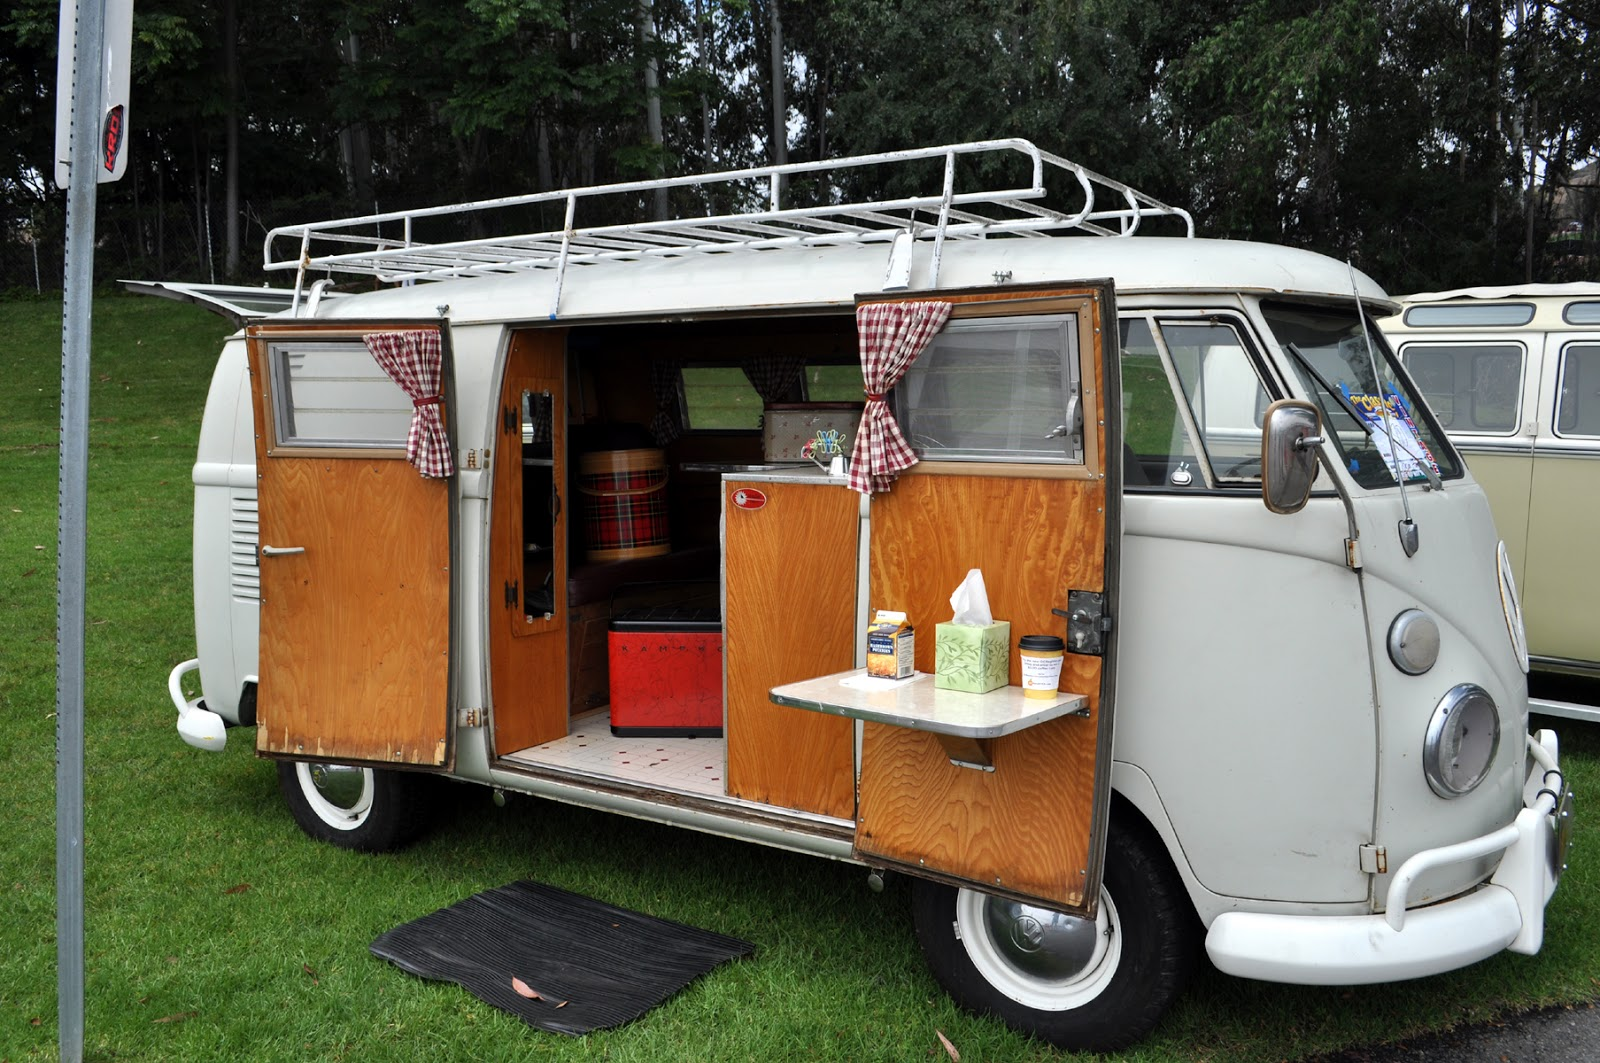 some of the nicest vw bus interiors from yesterdays bugorama at the rh michele maggioni blogspot com VW Bus Interior with Bed VW Bus Interior with Bed